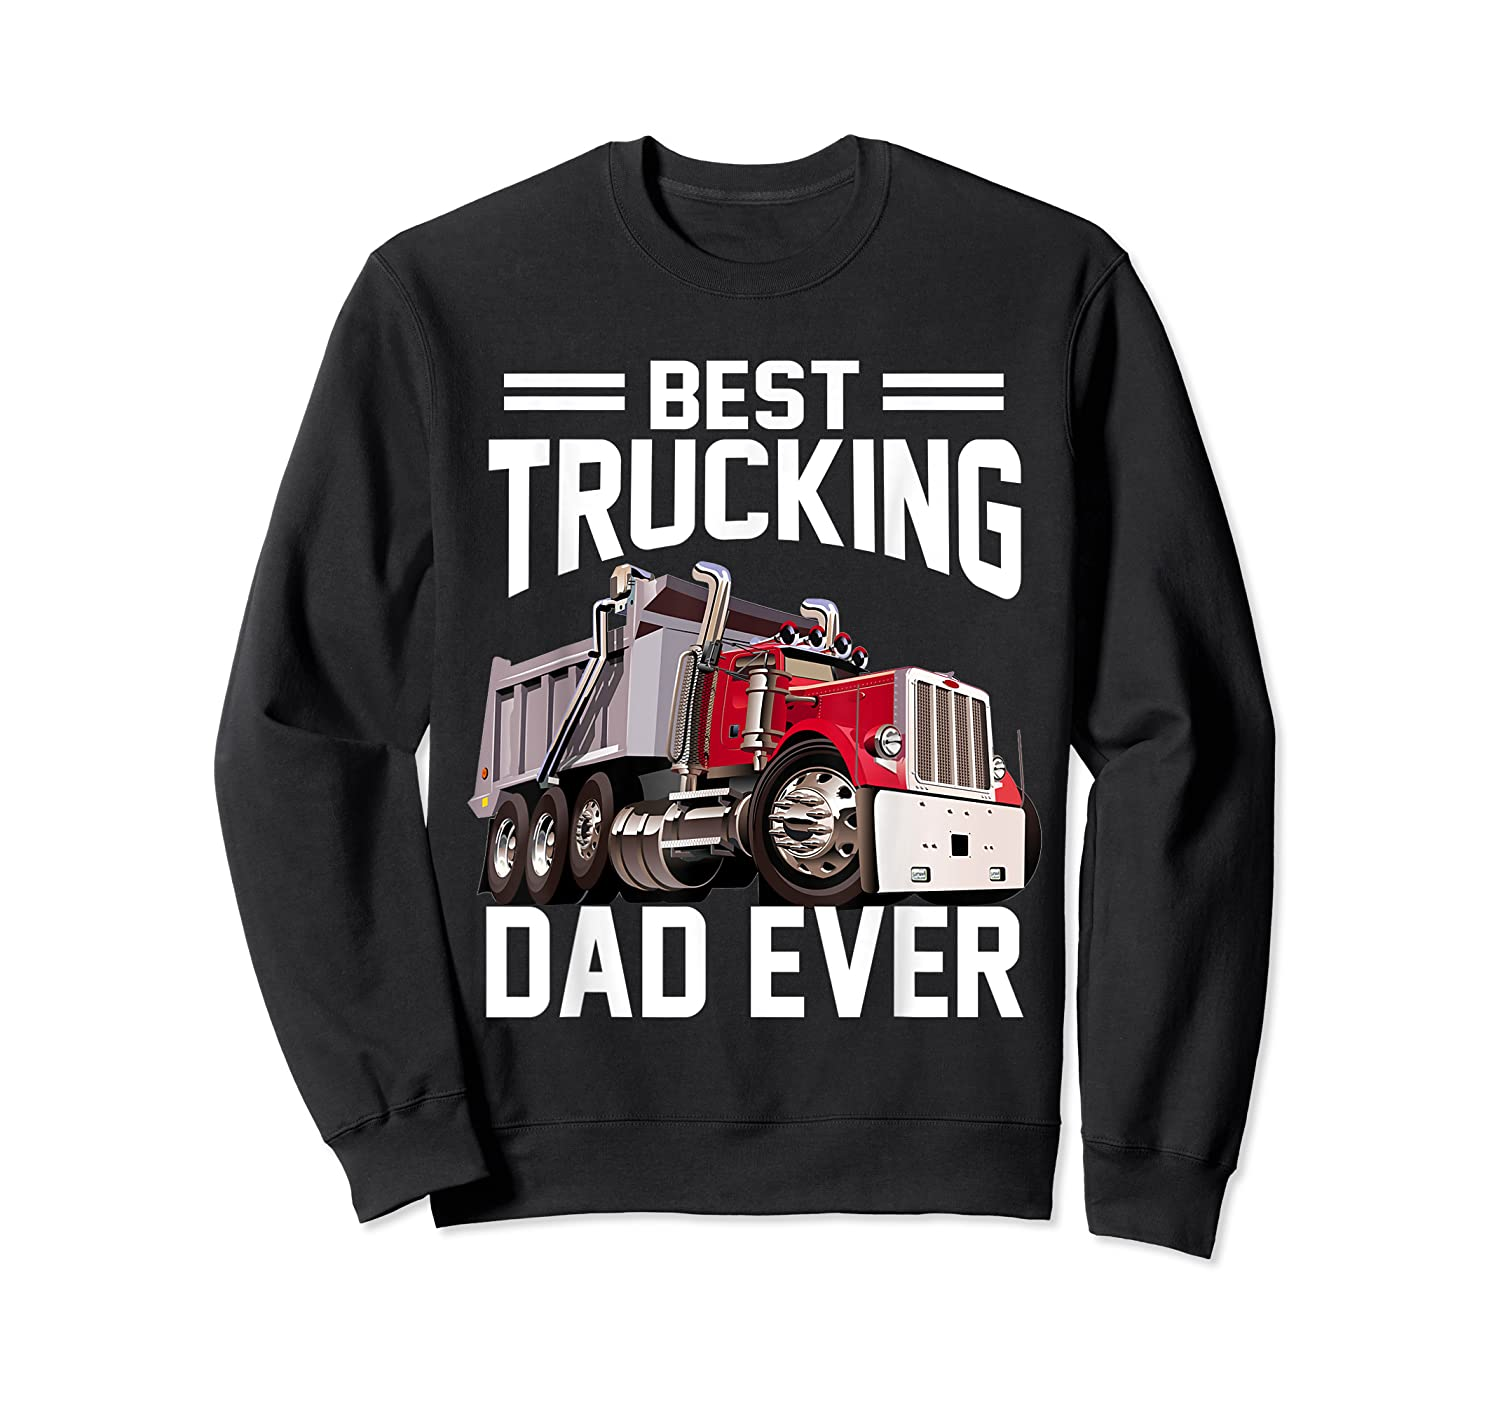 Best Trucking Dad Ever Father's Day Gift Shirts Crewneck Sweater